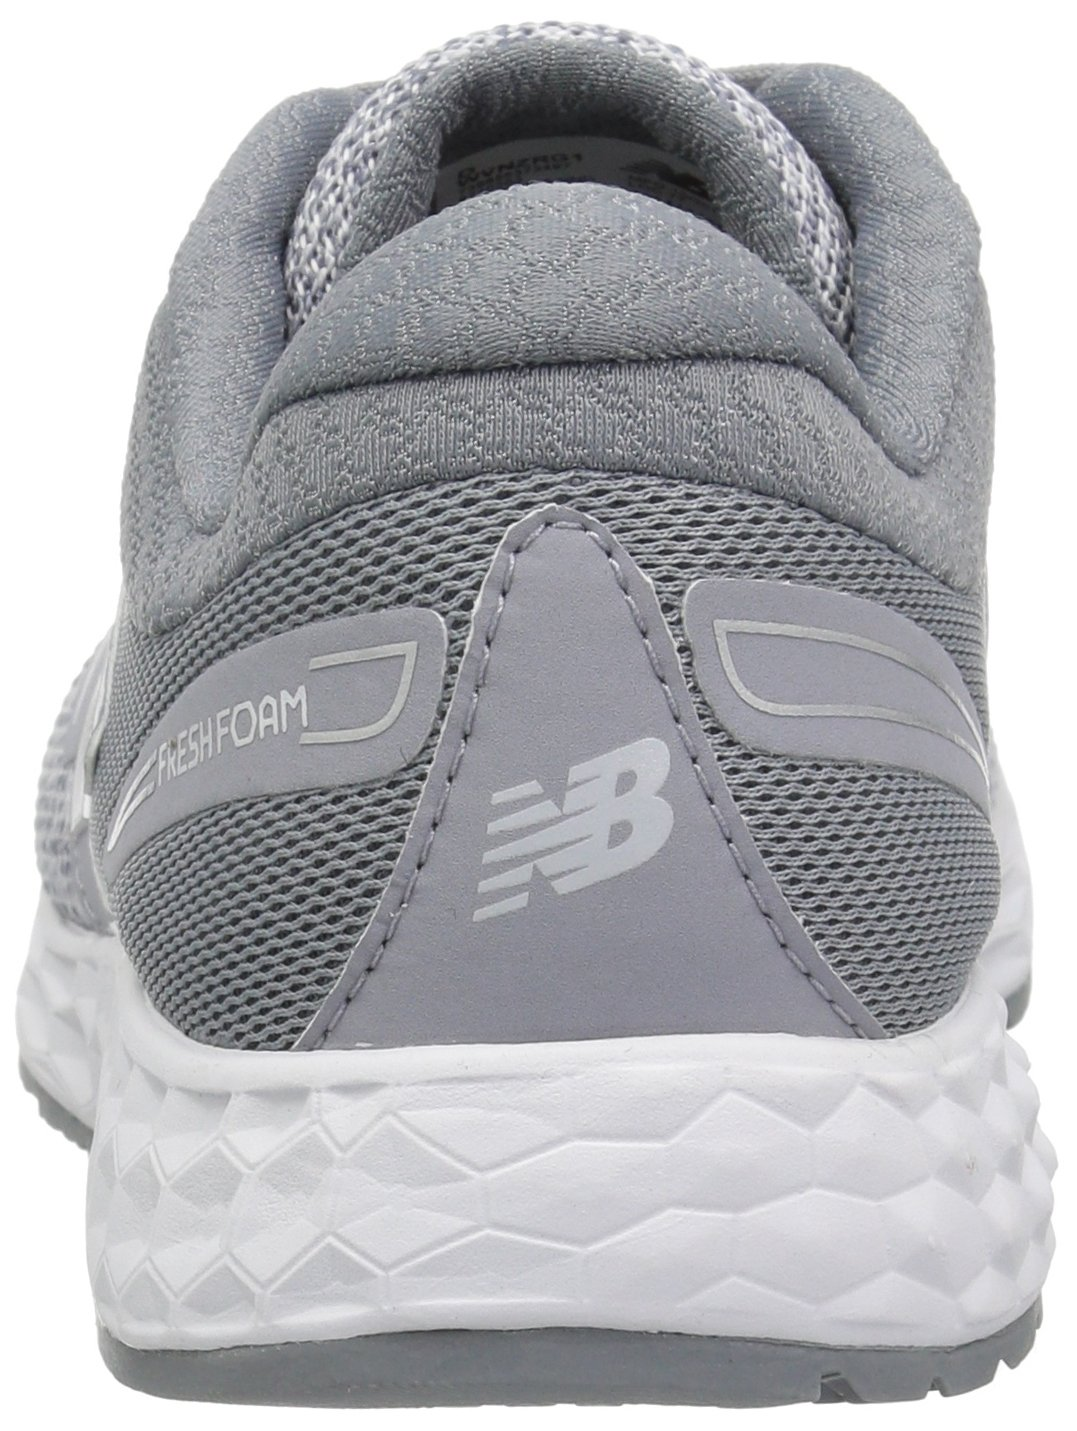 New B06XSDNWKT Balance Women's Fresh Foam Veniz v1 Running Shoe B06XSDNWKT New 7 B(M) US|Steel/Artic Fox 216abc